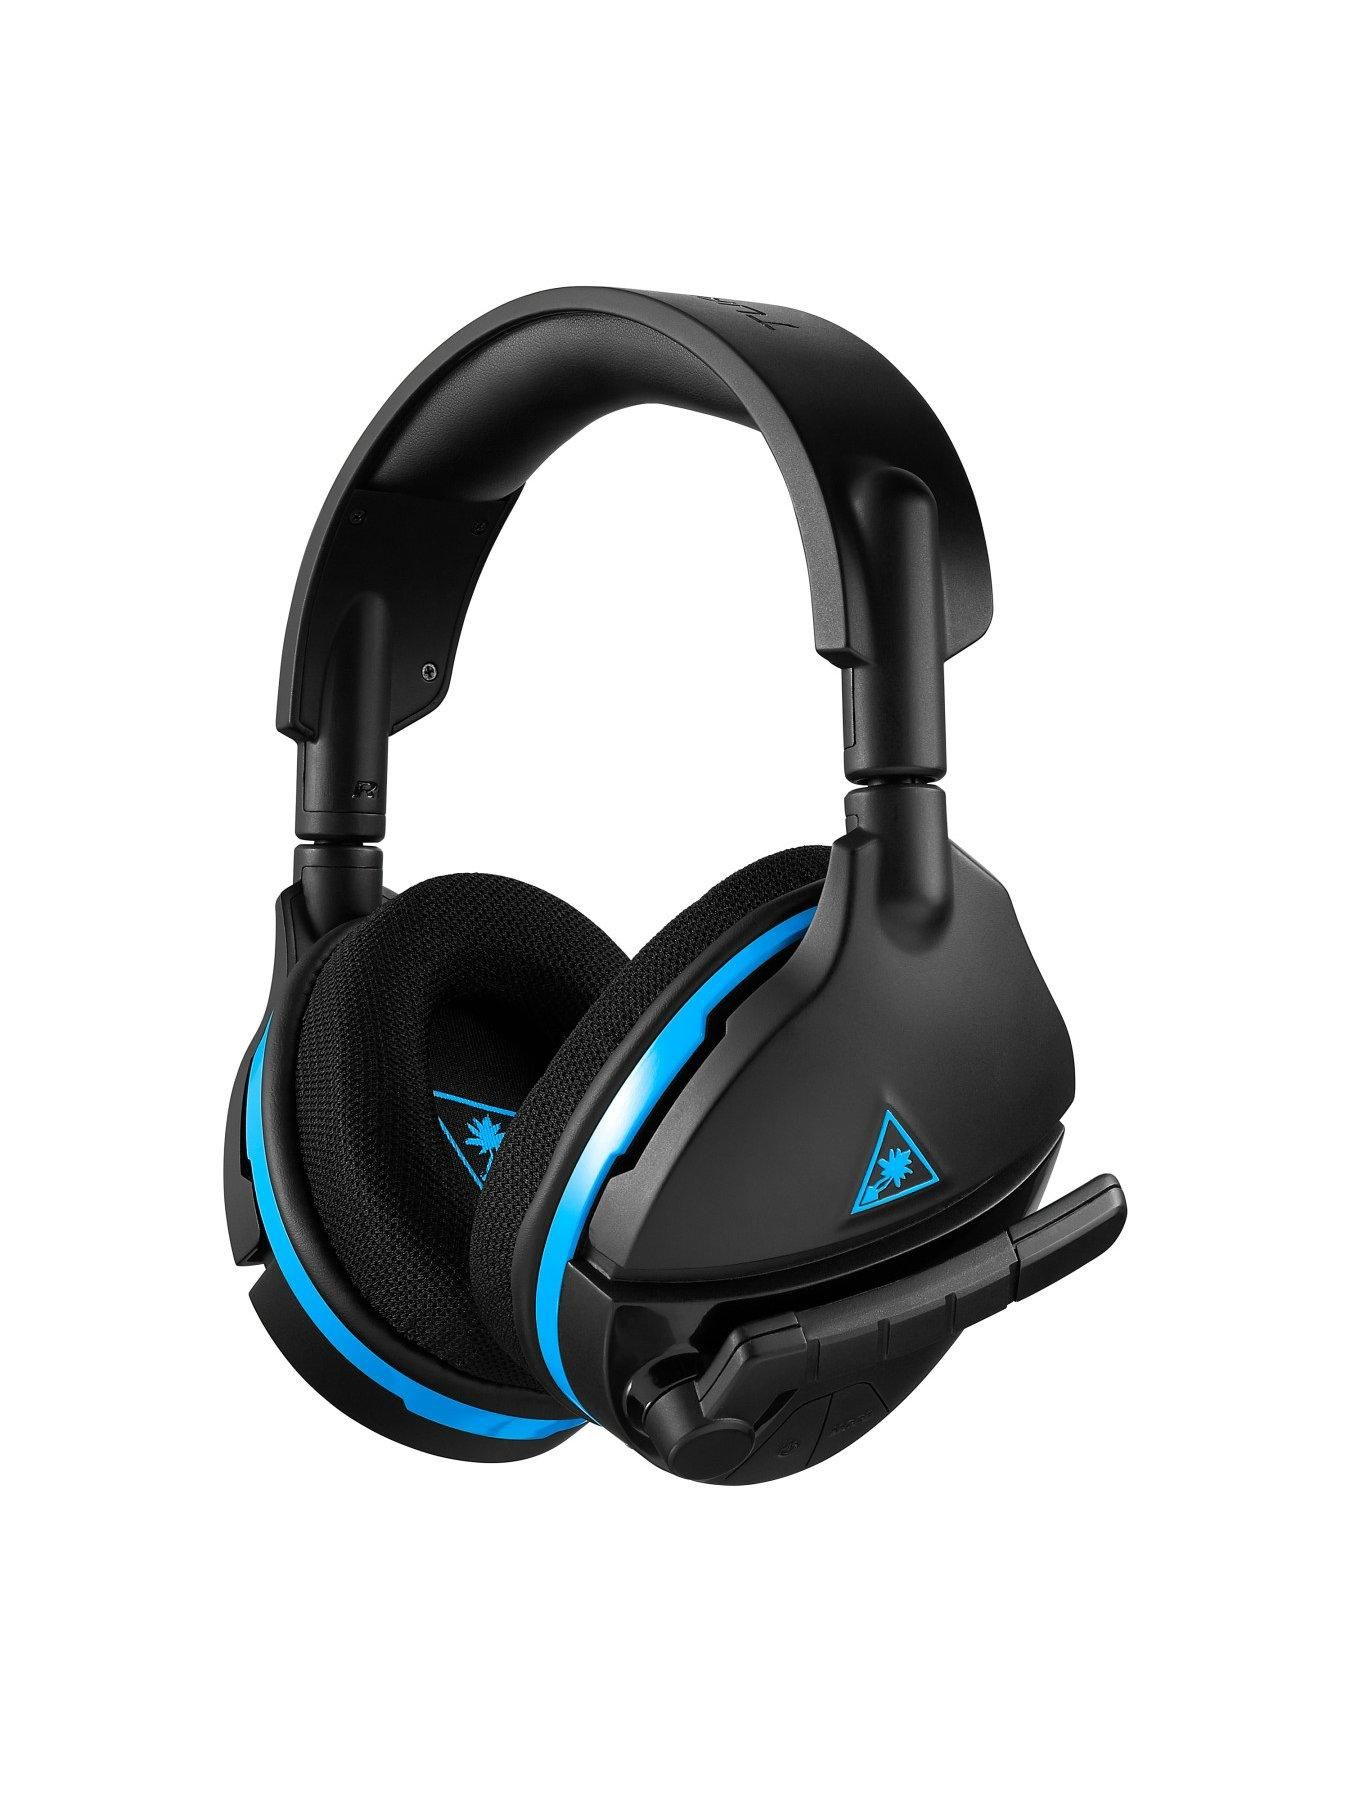 Turtle Beach Stealth 600 Wireless Gaming Headset Ps4 Version Turtle Beach Wireless Surround Sound Gaming Headset